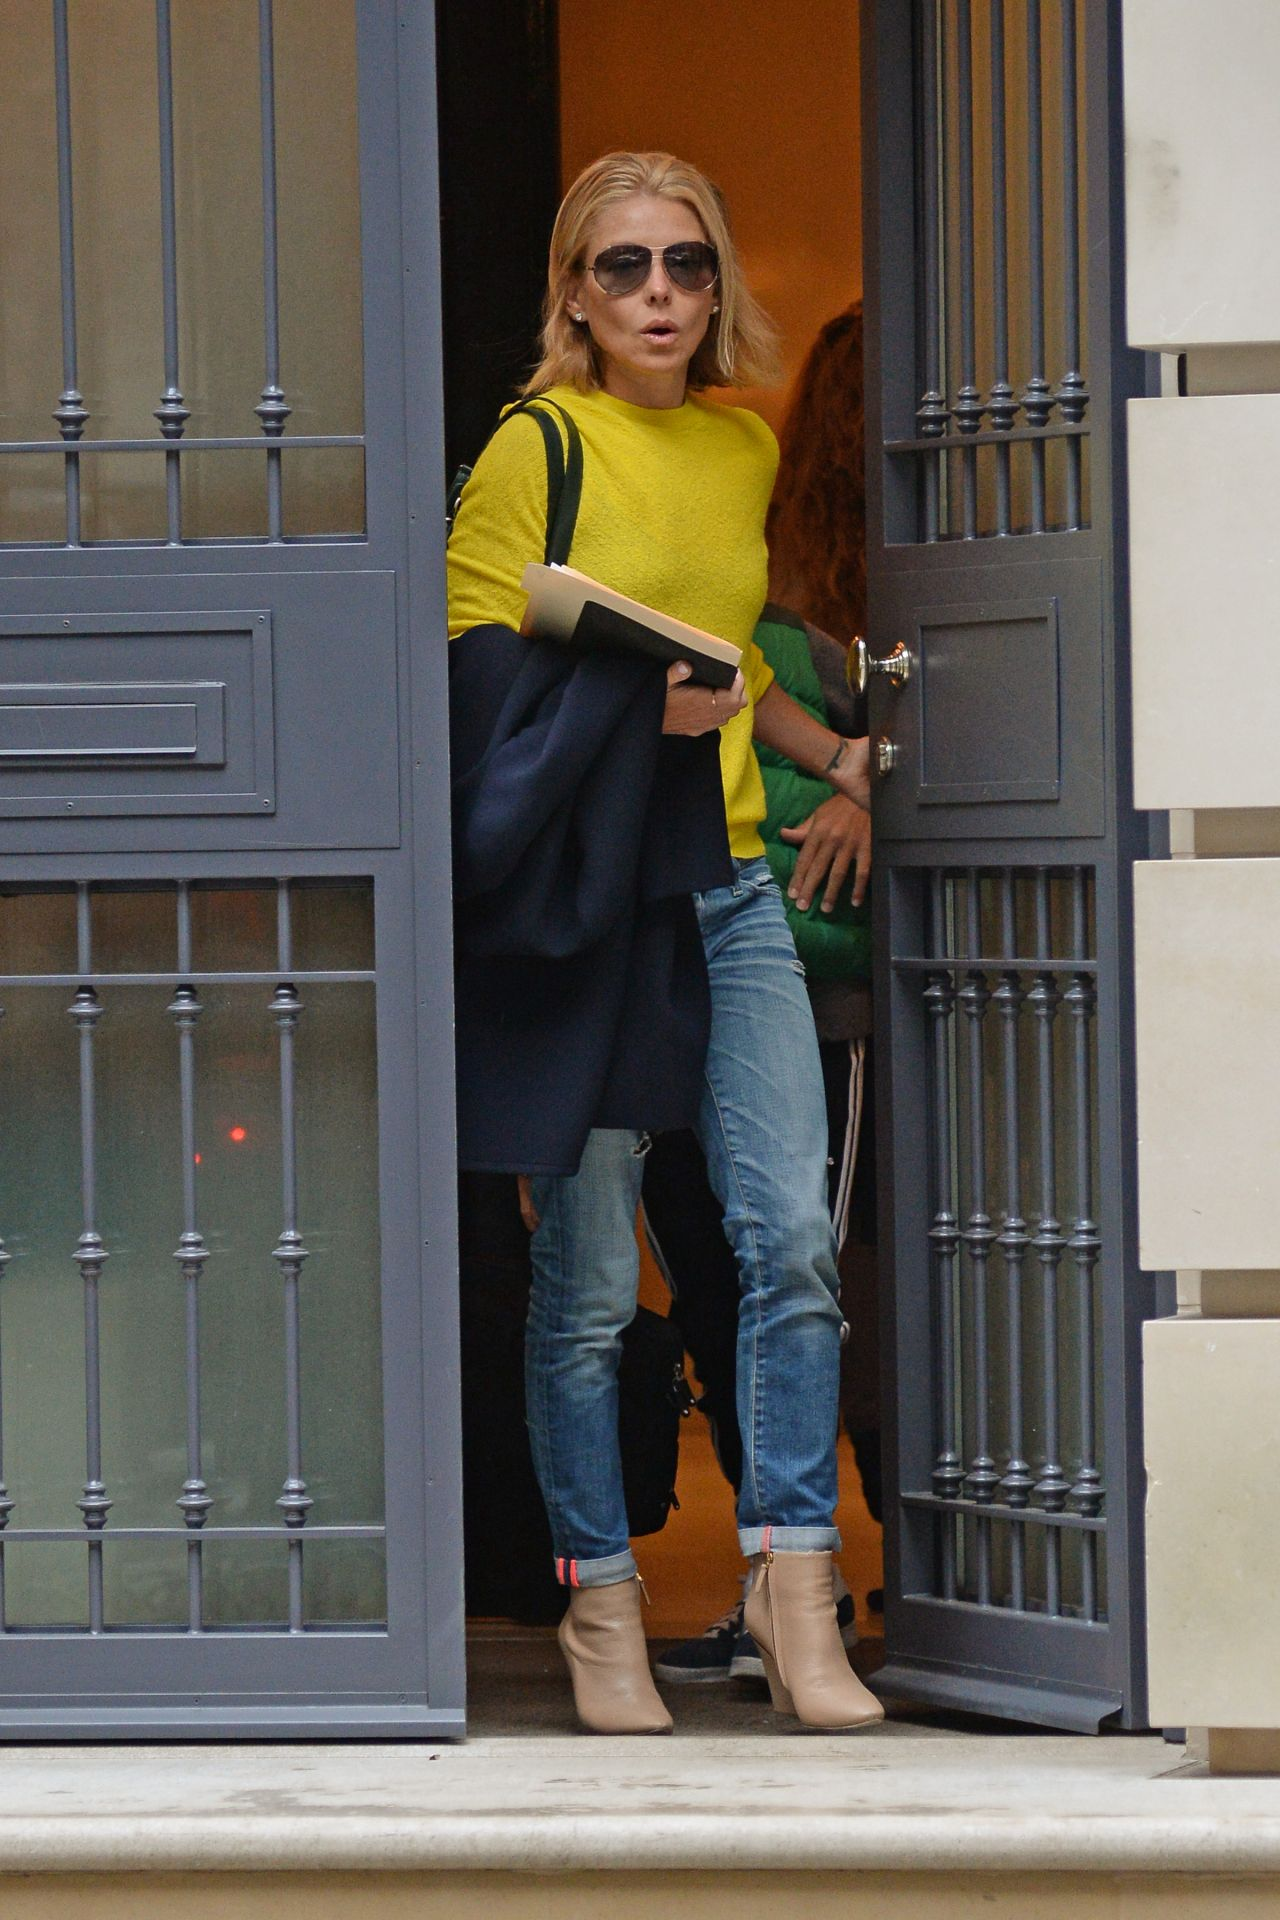 Kelly Ripa Leaving Her Apartment In New York City